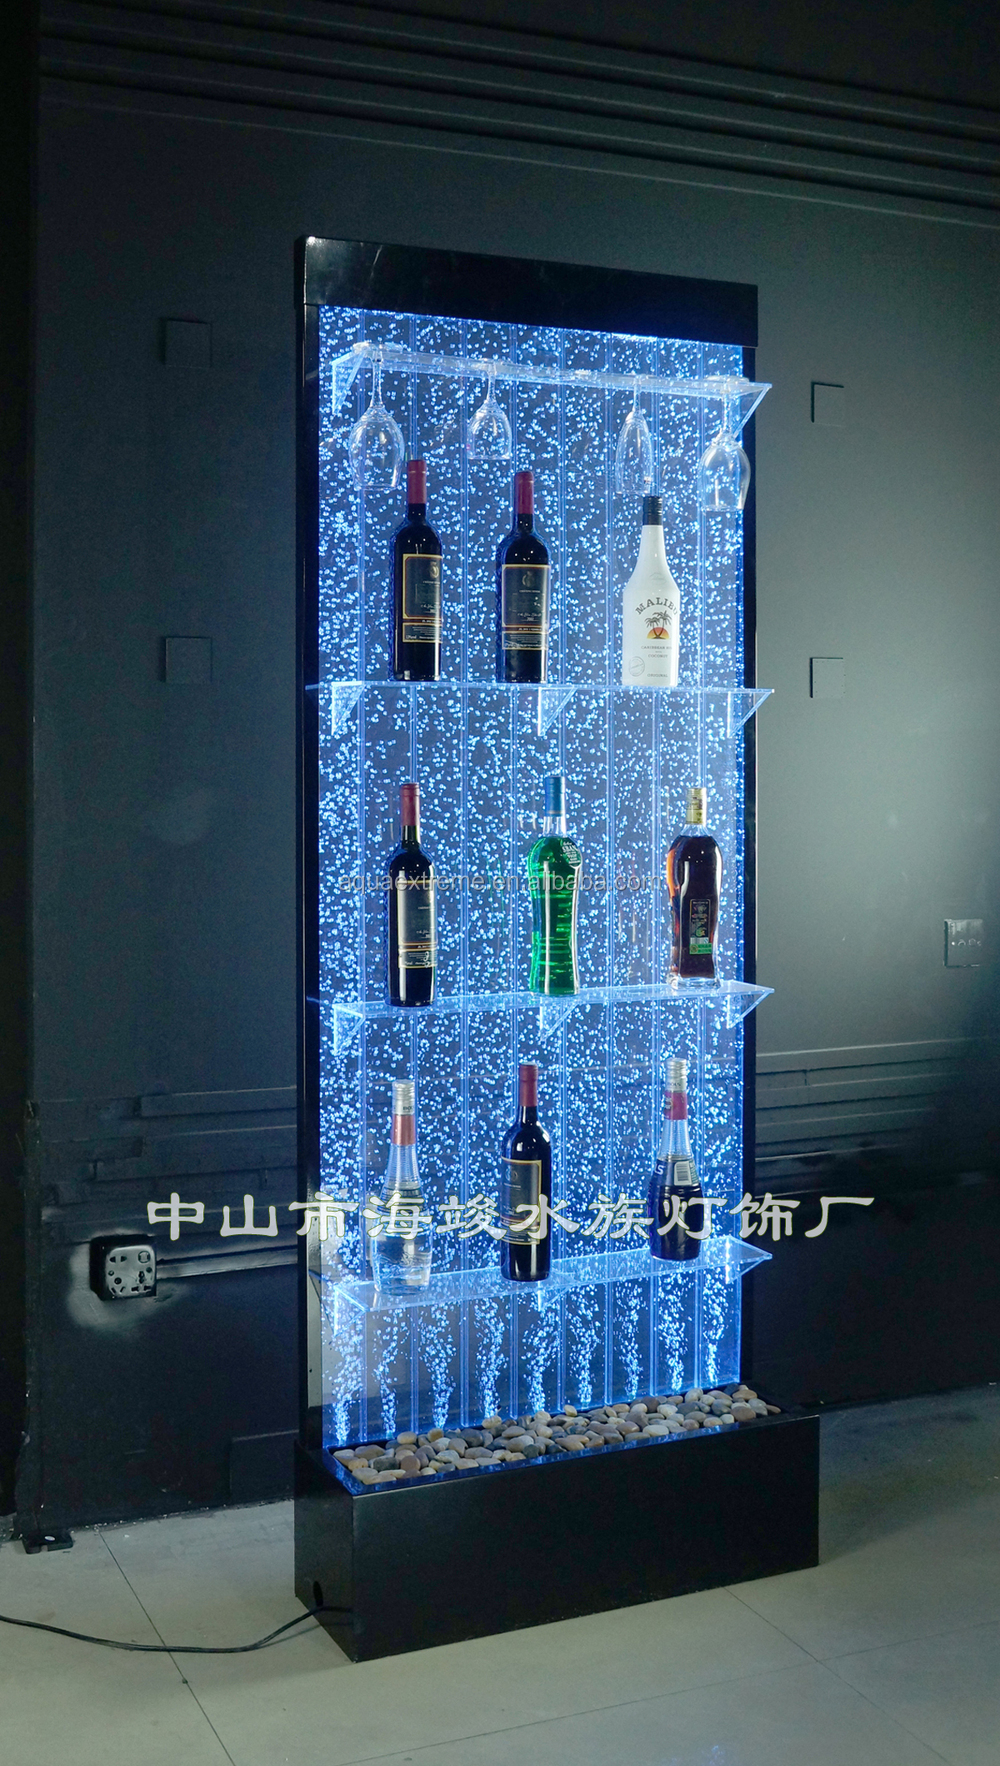 Led Lighting Bubble Water With Color Changing Liquor